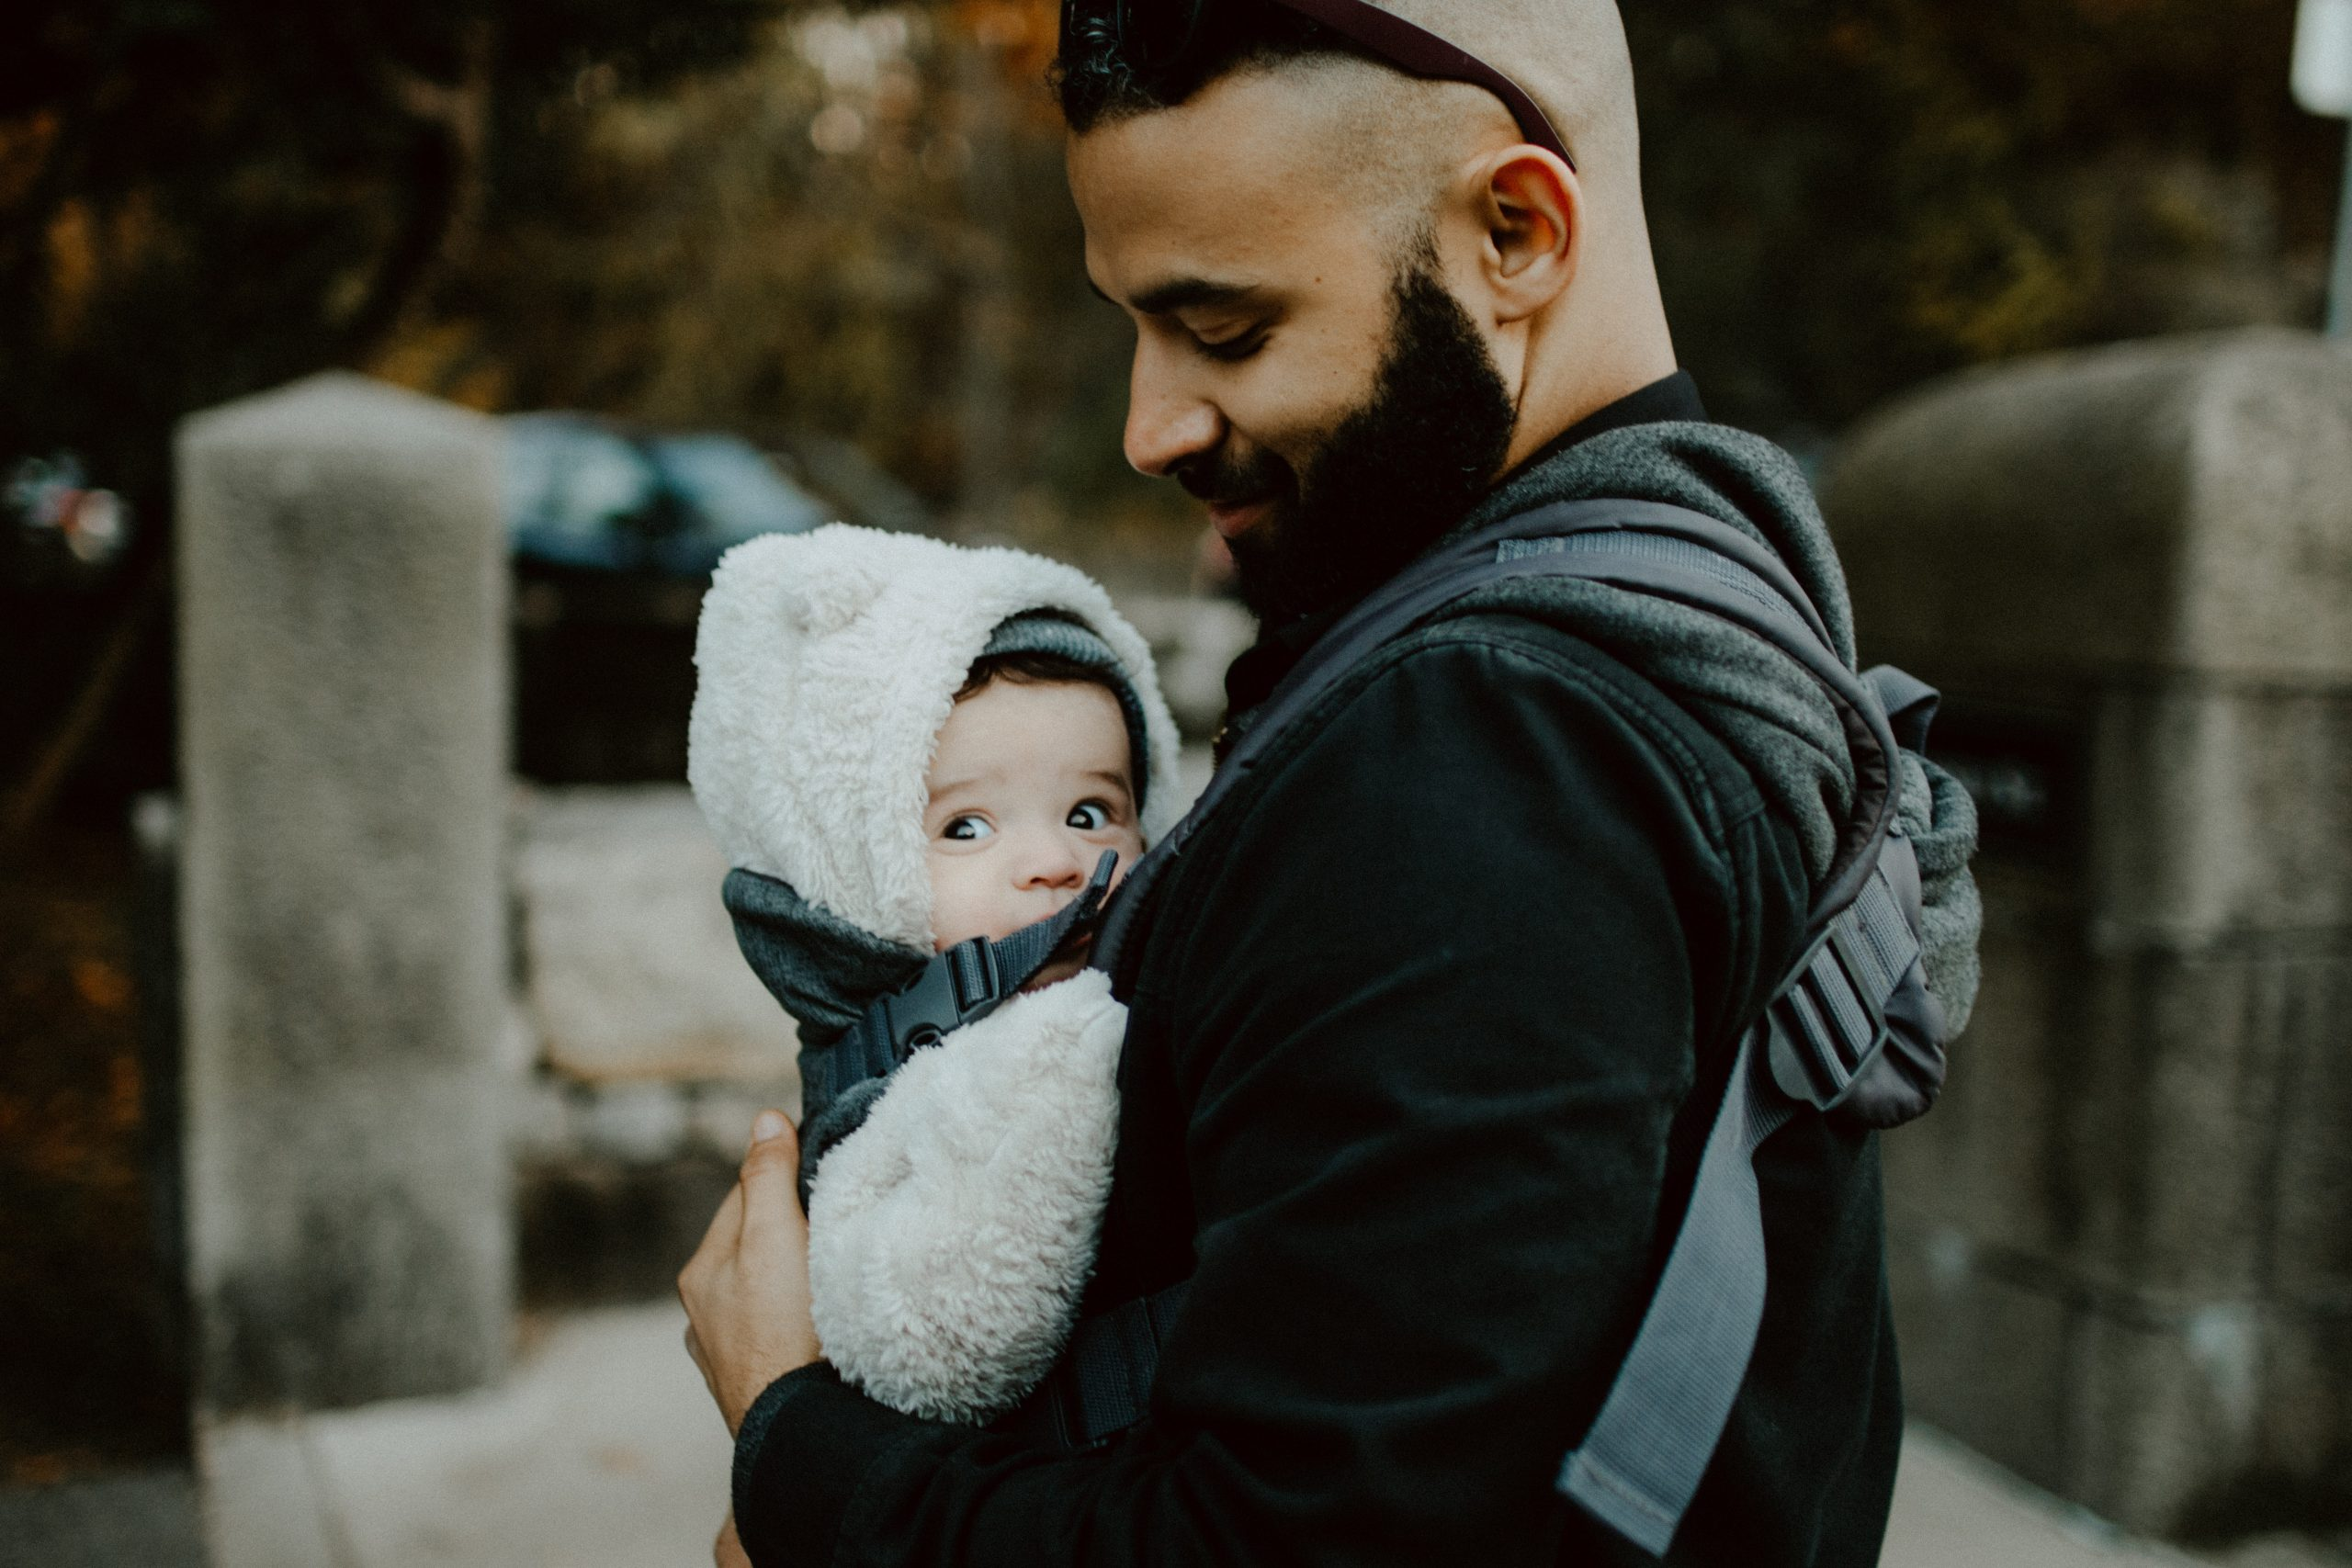 father and baby in baby carrier